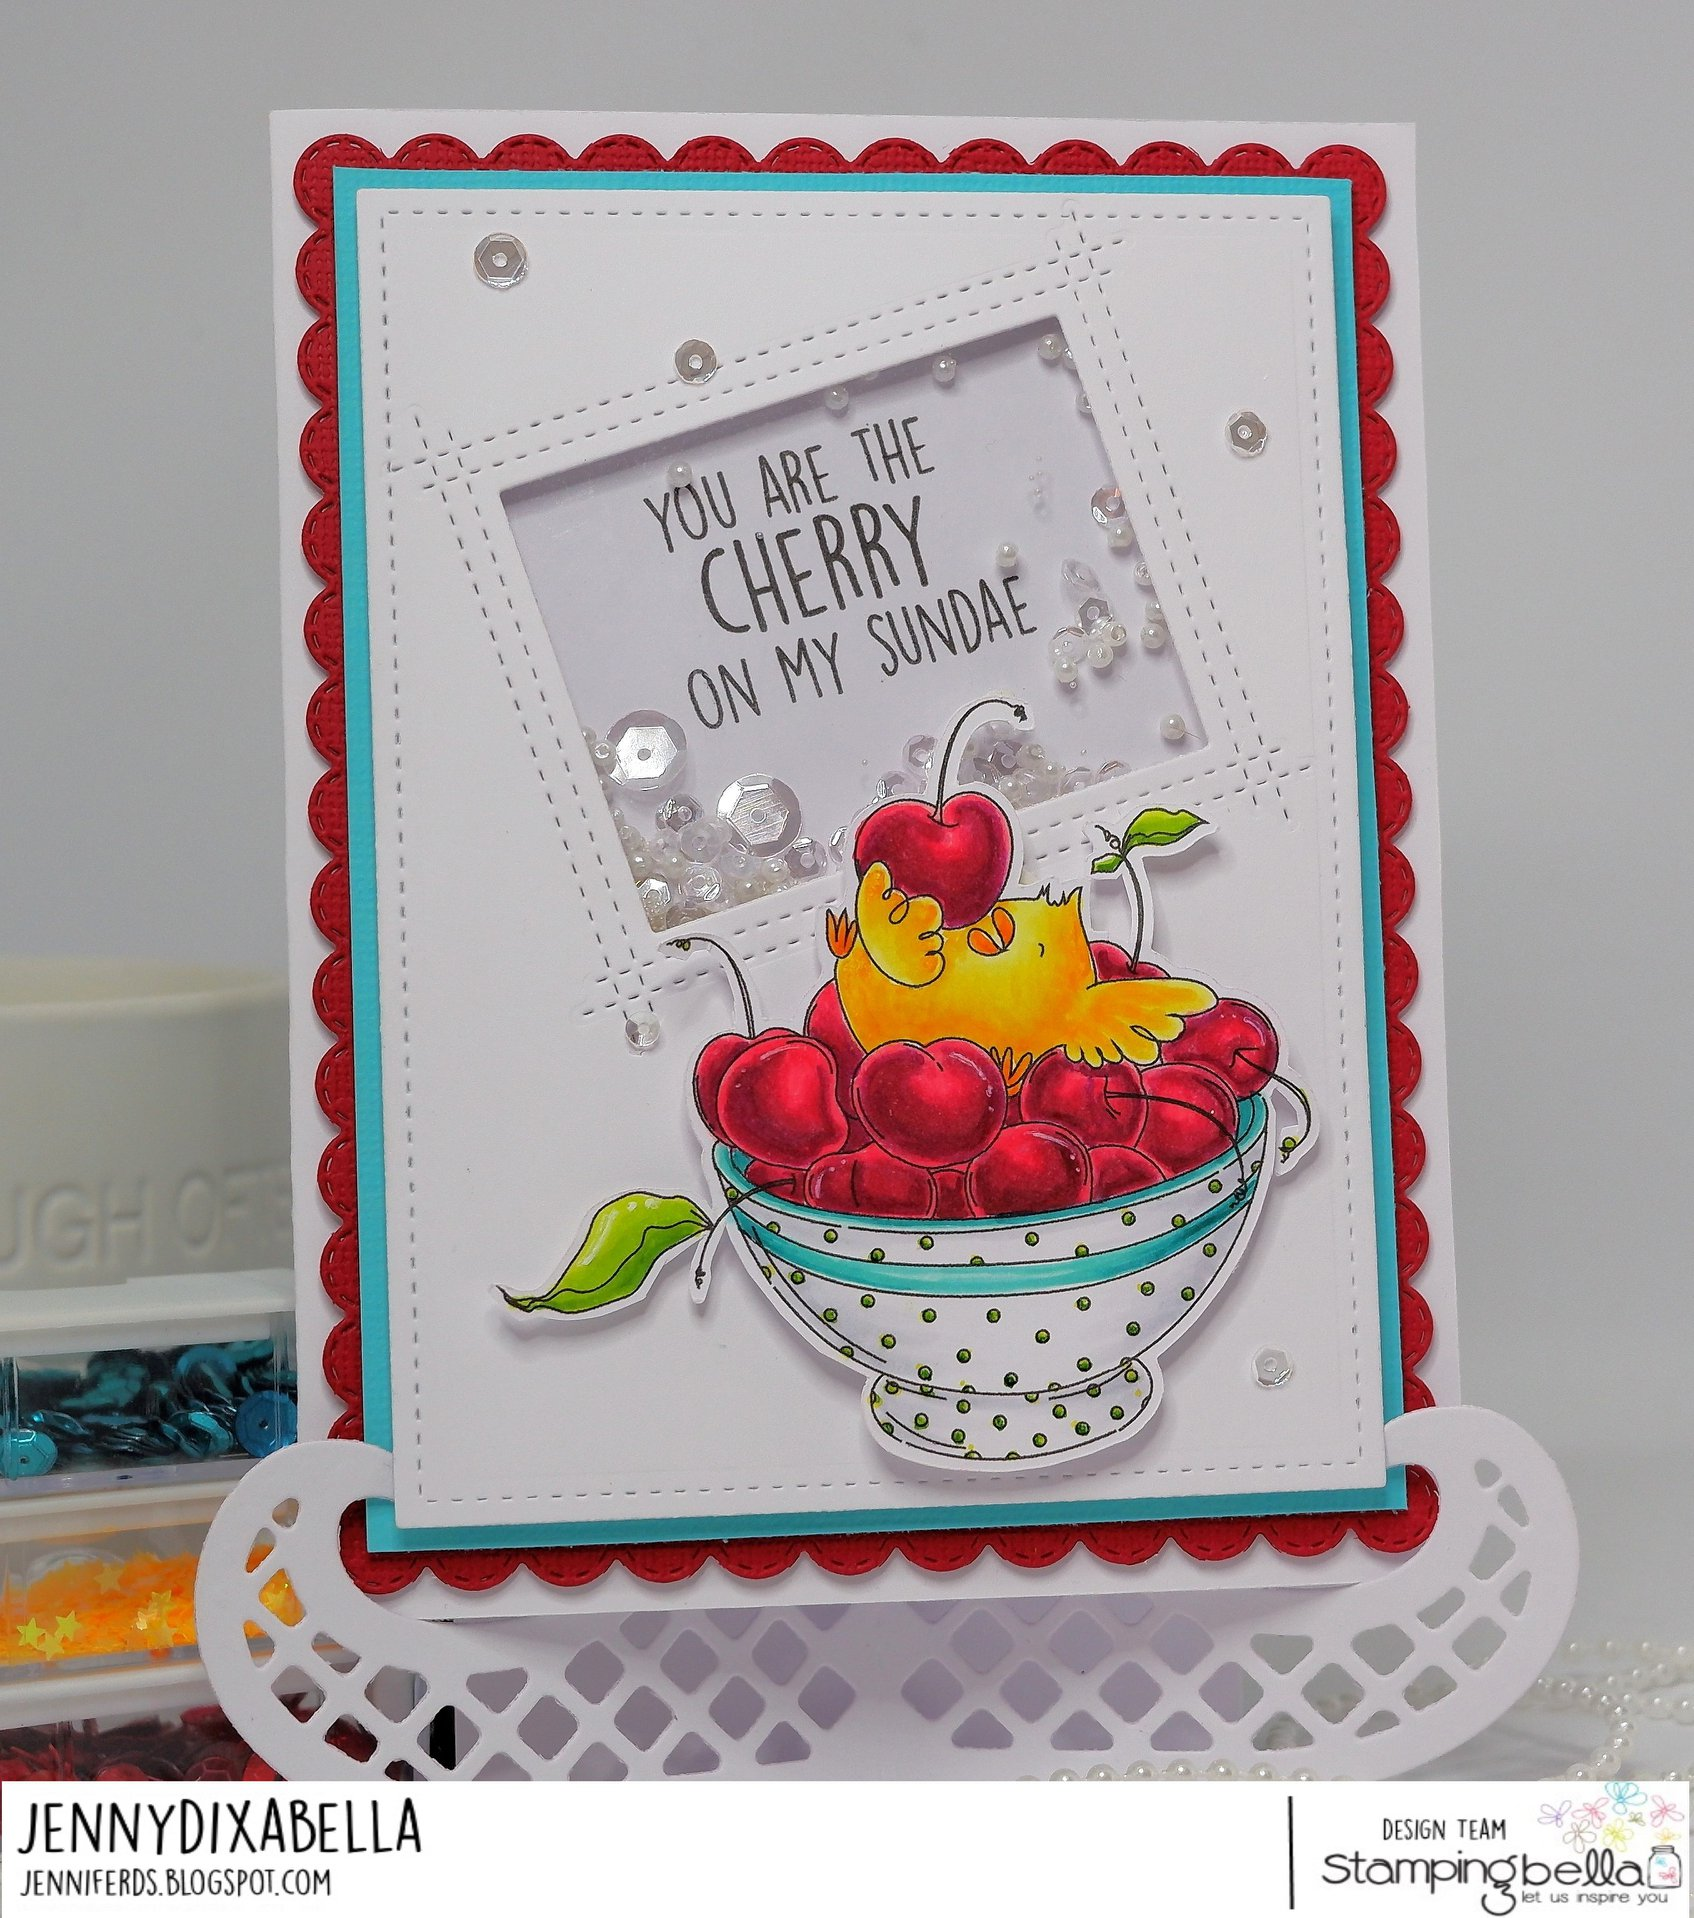 www.stampingbella.com: rubber stamp used : CHERRY CHICK.  Card made by  Jenny Dix